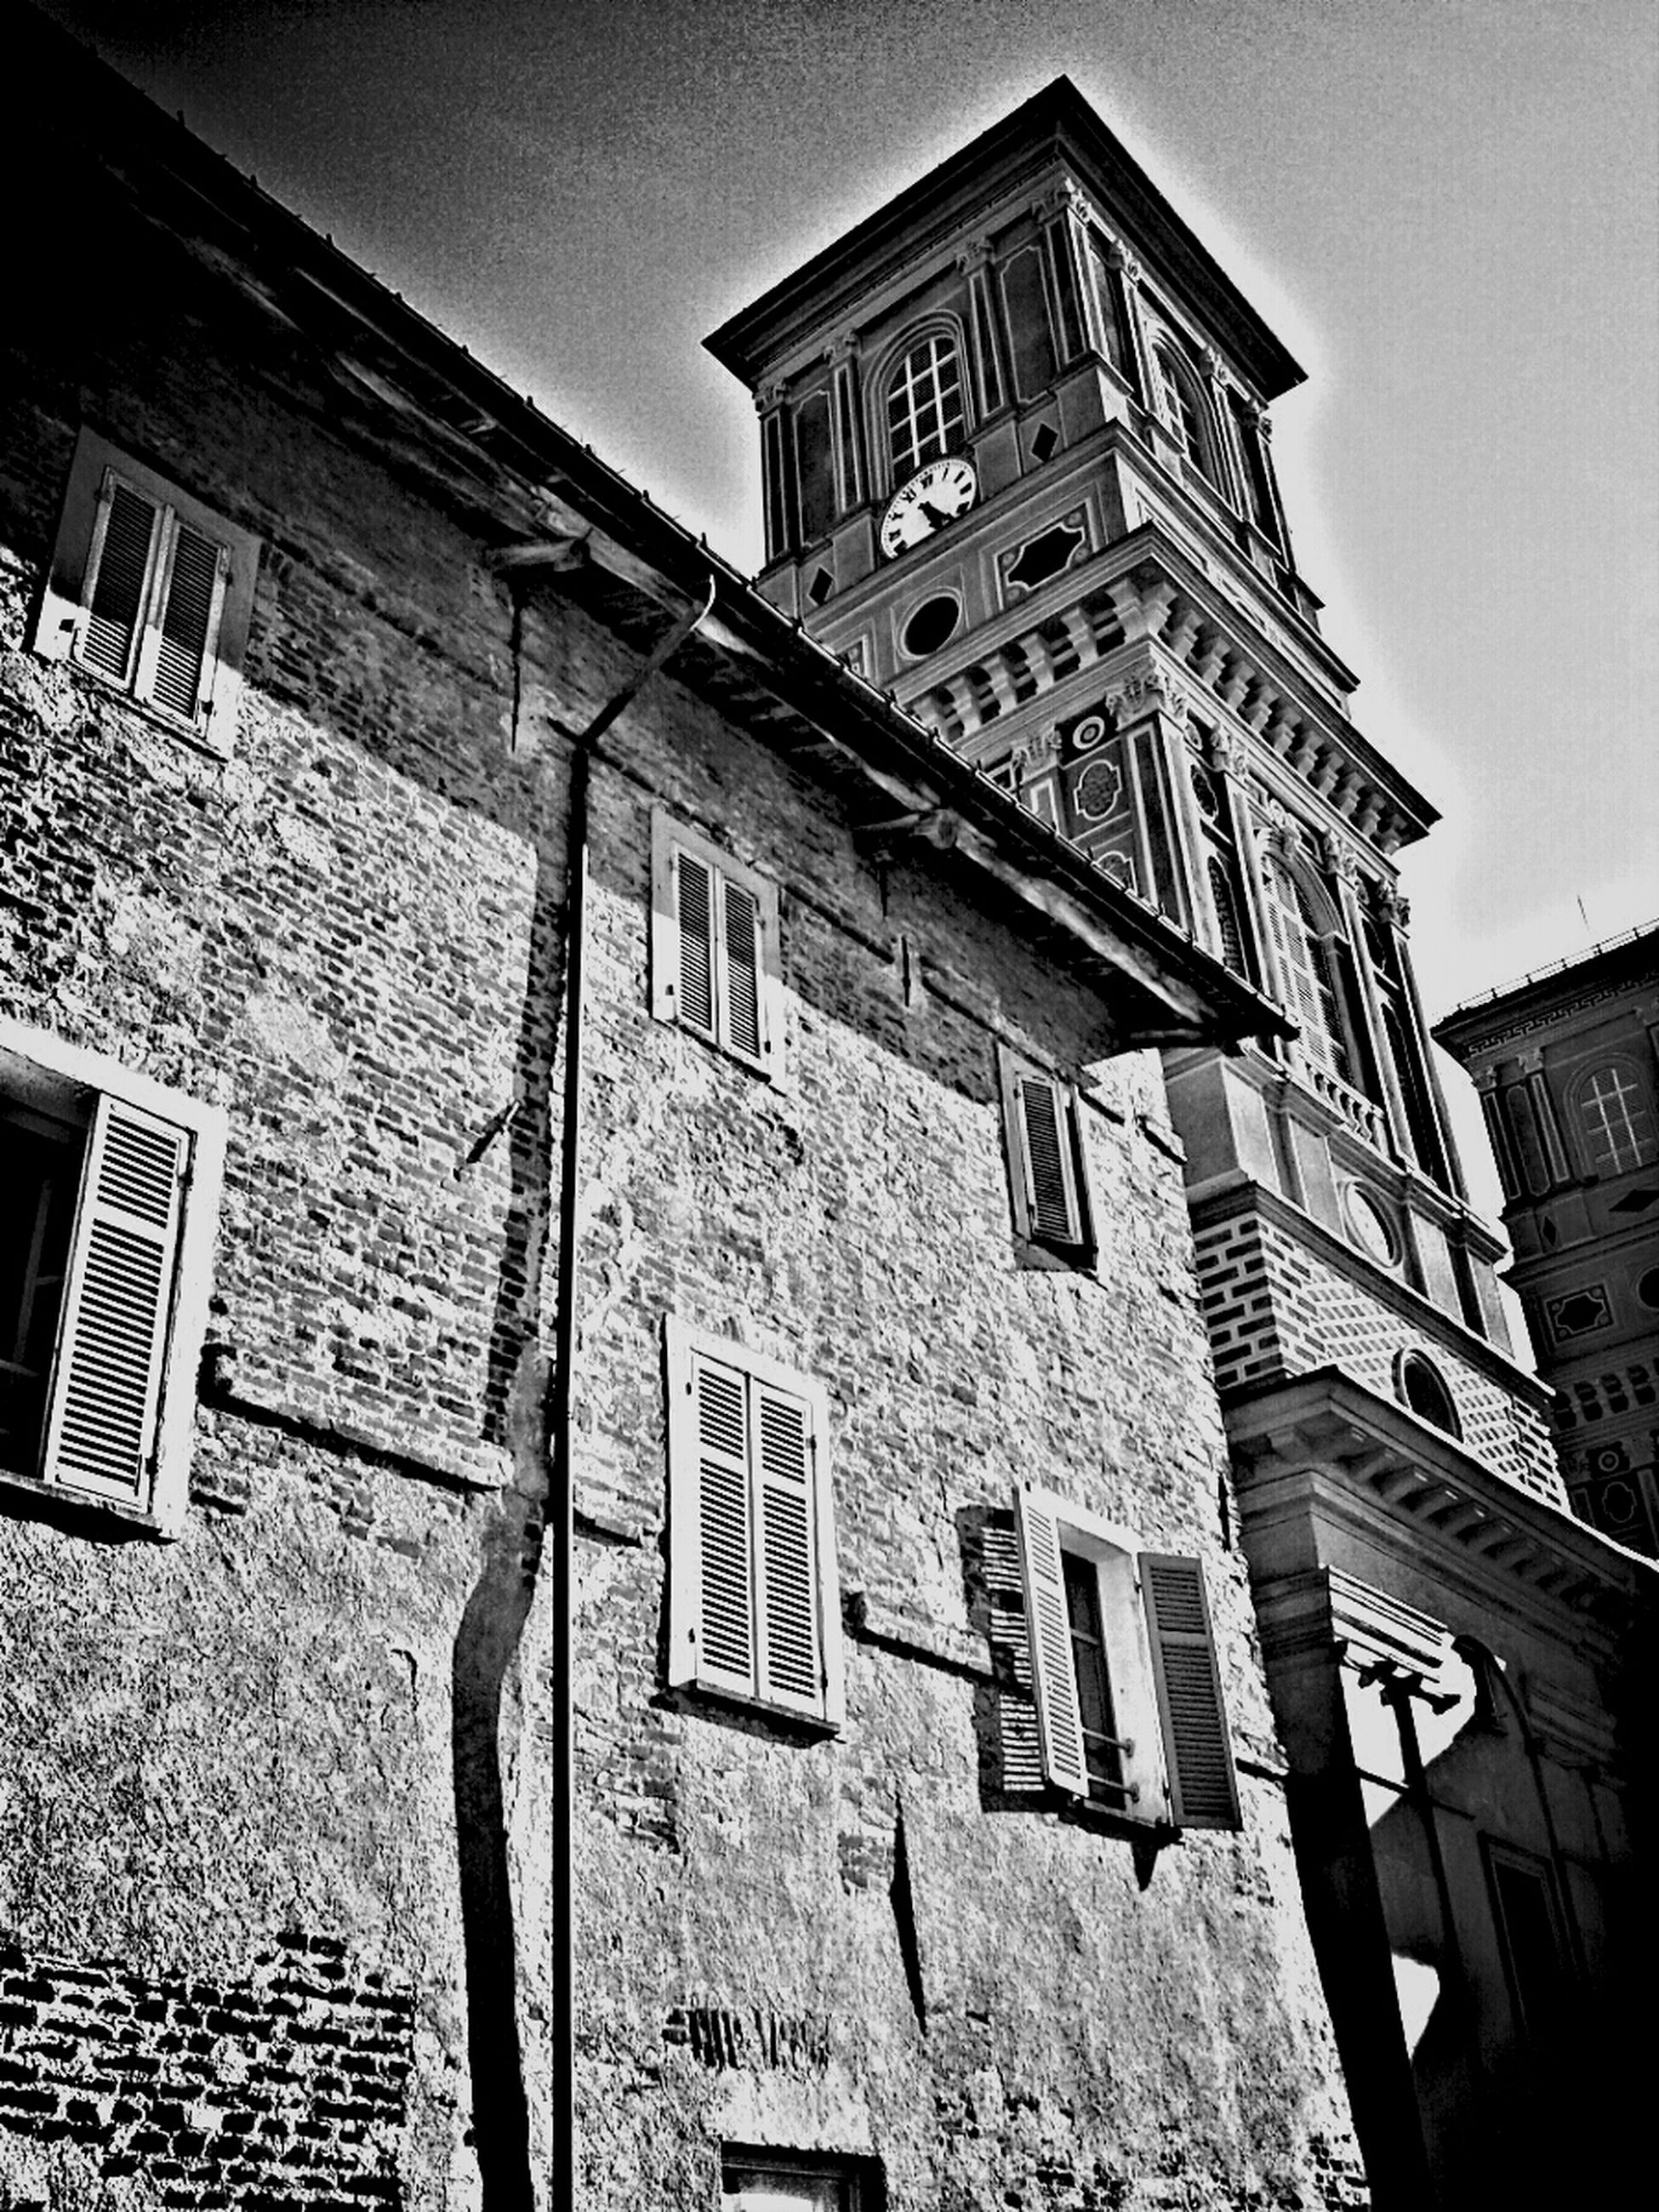 architecture, building exterior, built structure, low angle view, window, brick wall, clear sky, building, sky, day, outdoors, no people, text, city, facade, wall - building feature, sunlight, tower, old, religion